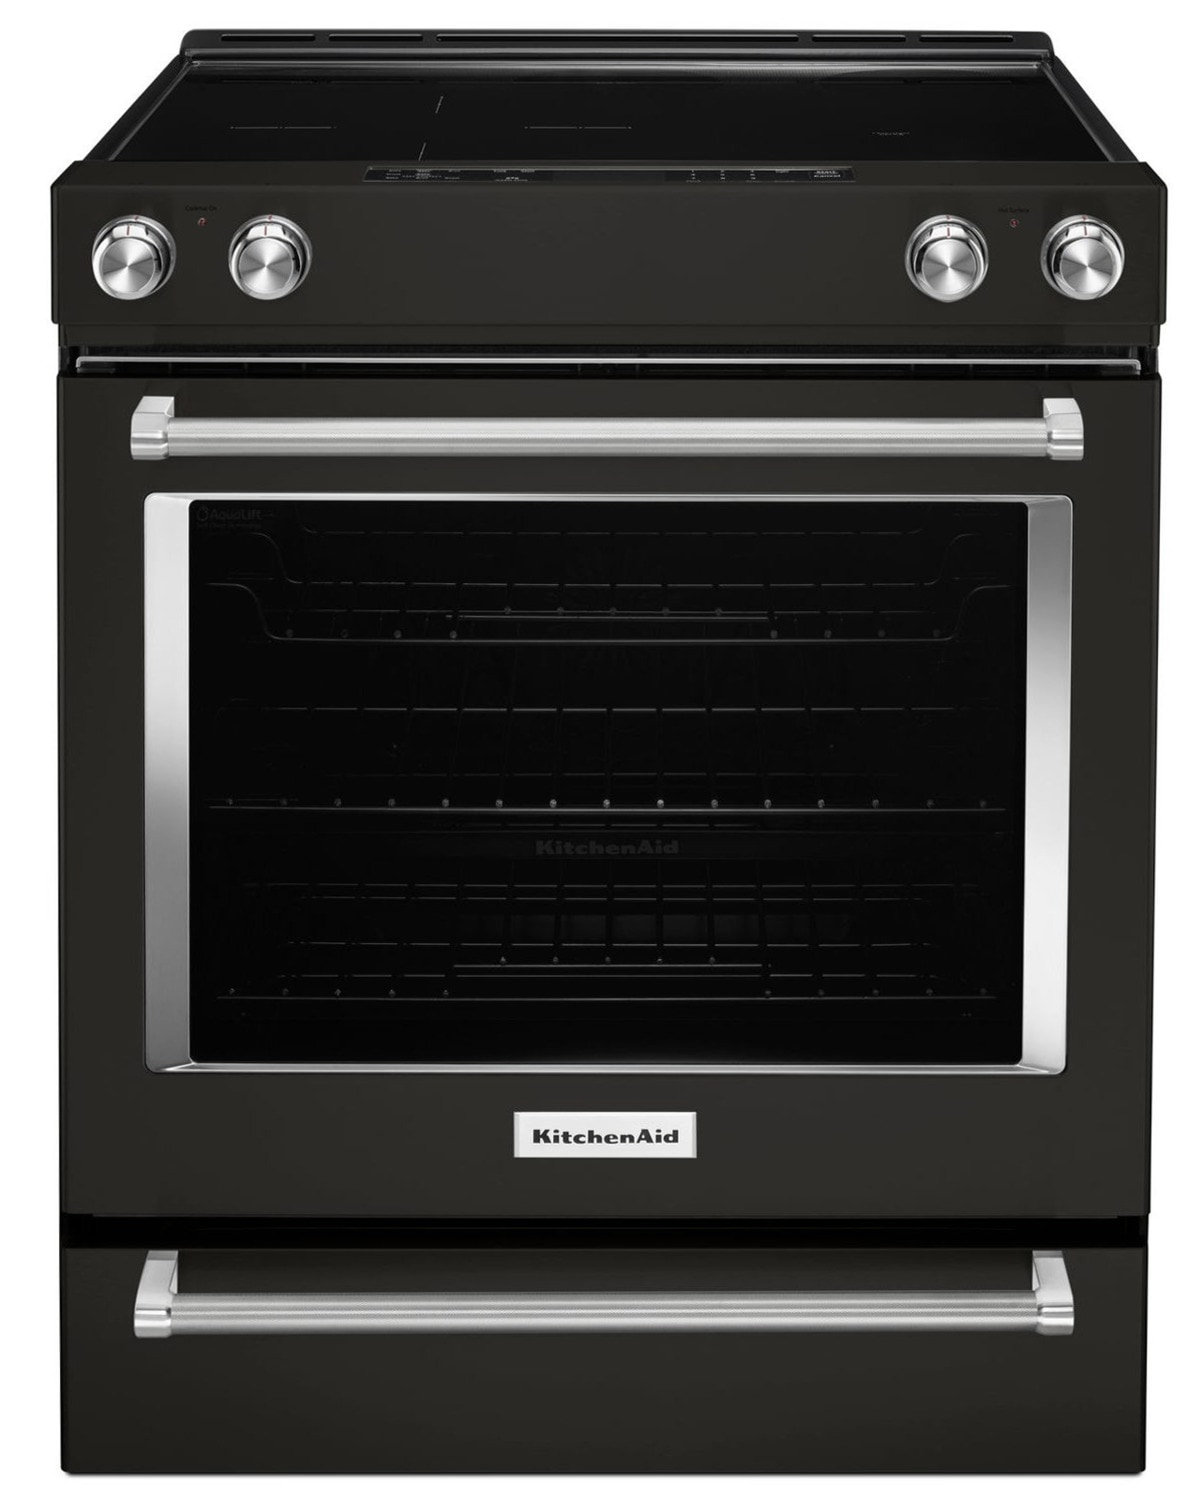 Kitchenaid Bold Black Stainless: KitchenAid Black Stainless Steel Slide-In Electric